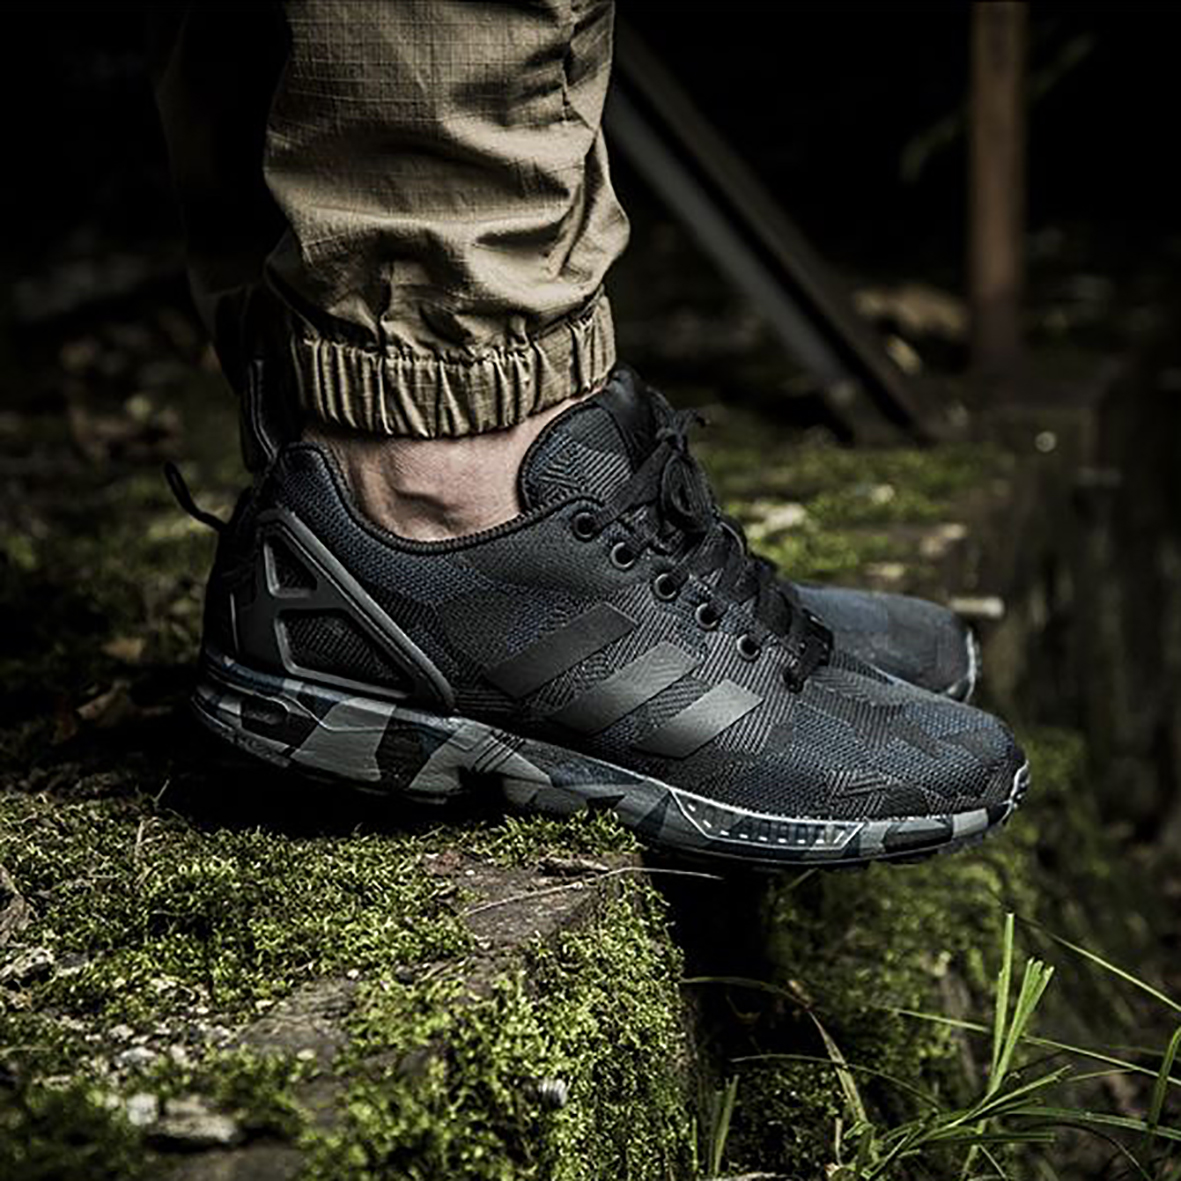 8f608fe2abbf3 sweden adidas zx flux italia independent camouflage sneakers addict jual  adidas zx flux print 5175e 01940